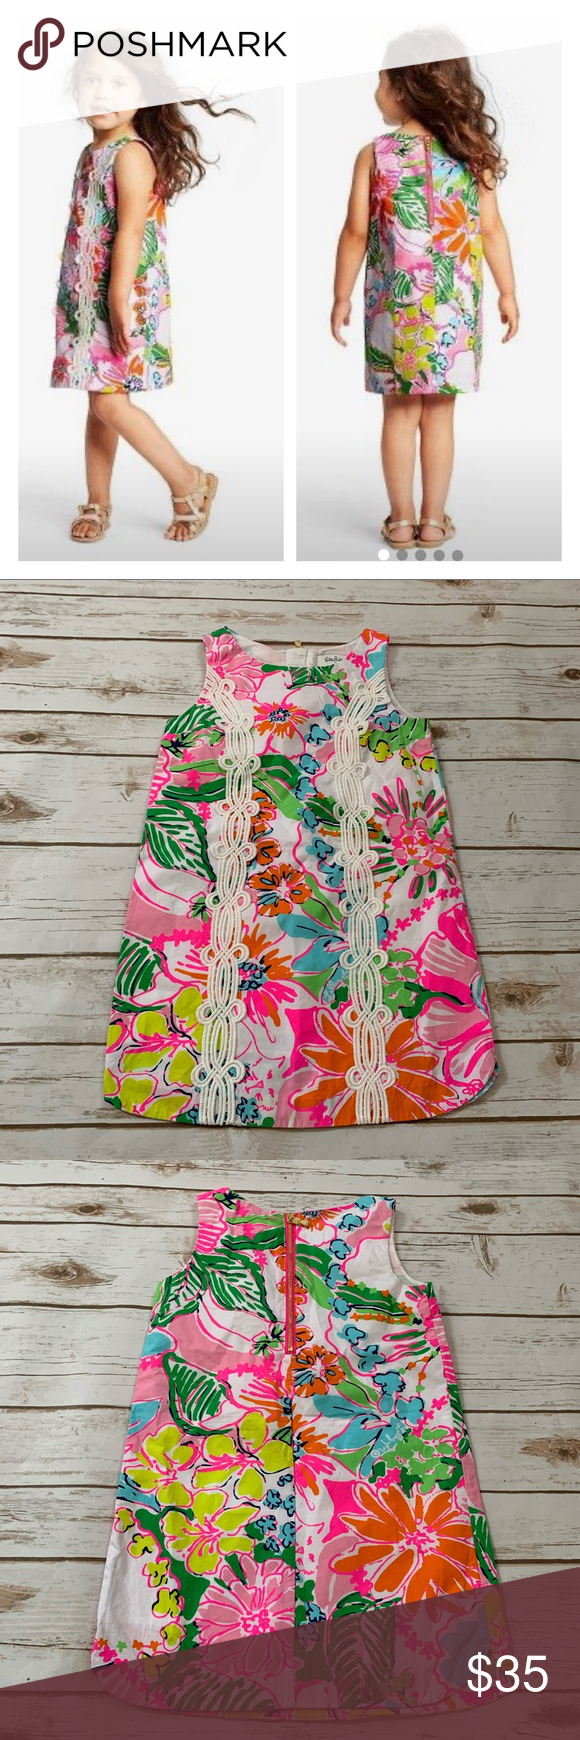 Lilly Pulitzer for Target Girl Dress XS Lilly Pulitzer for